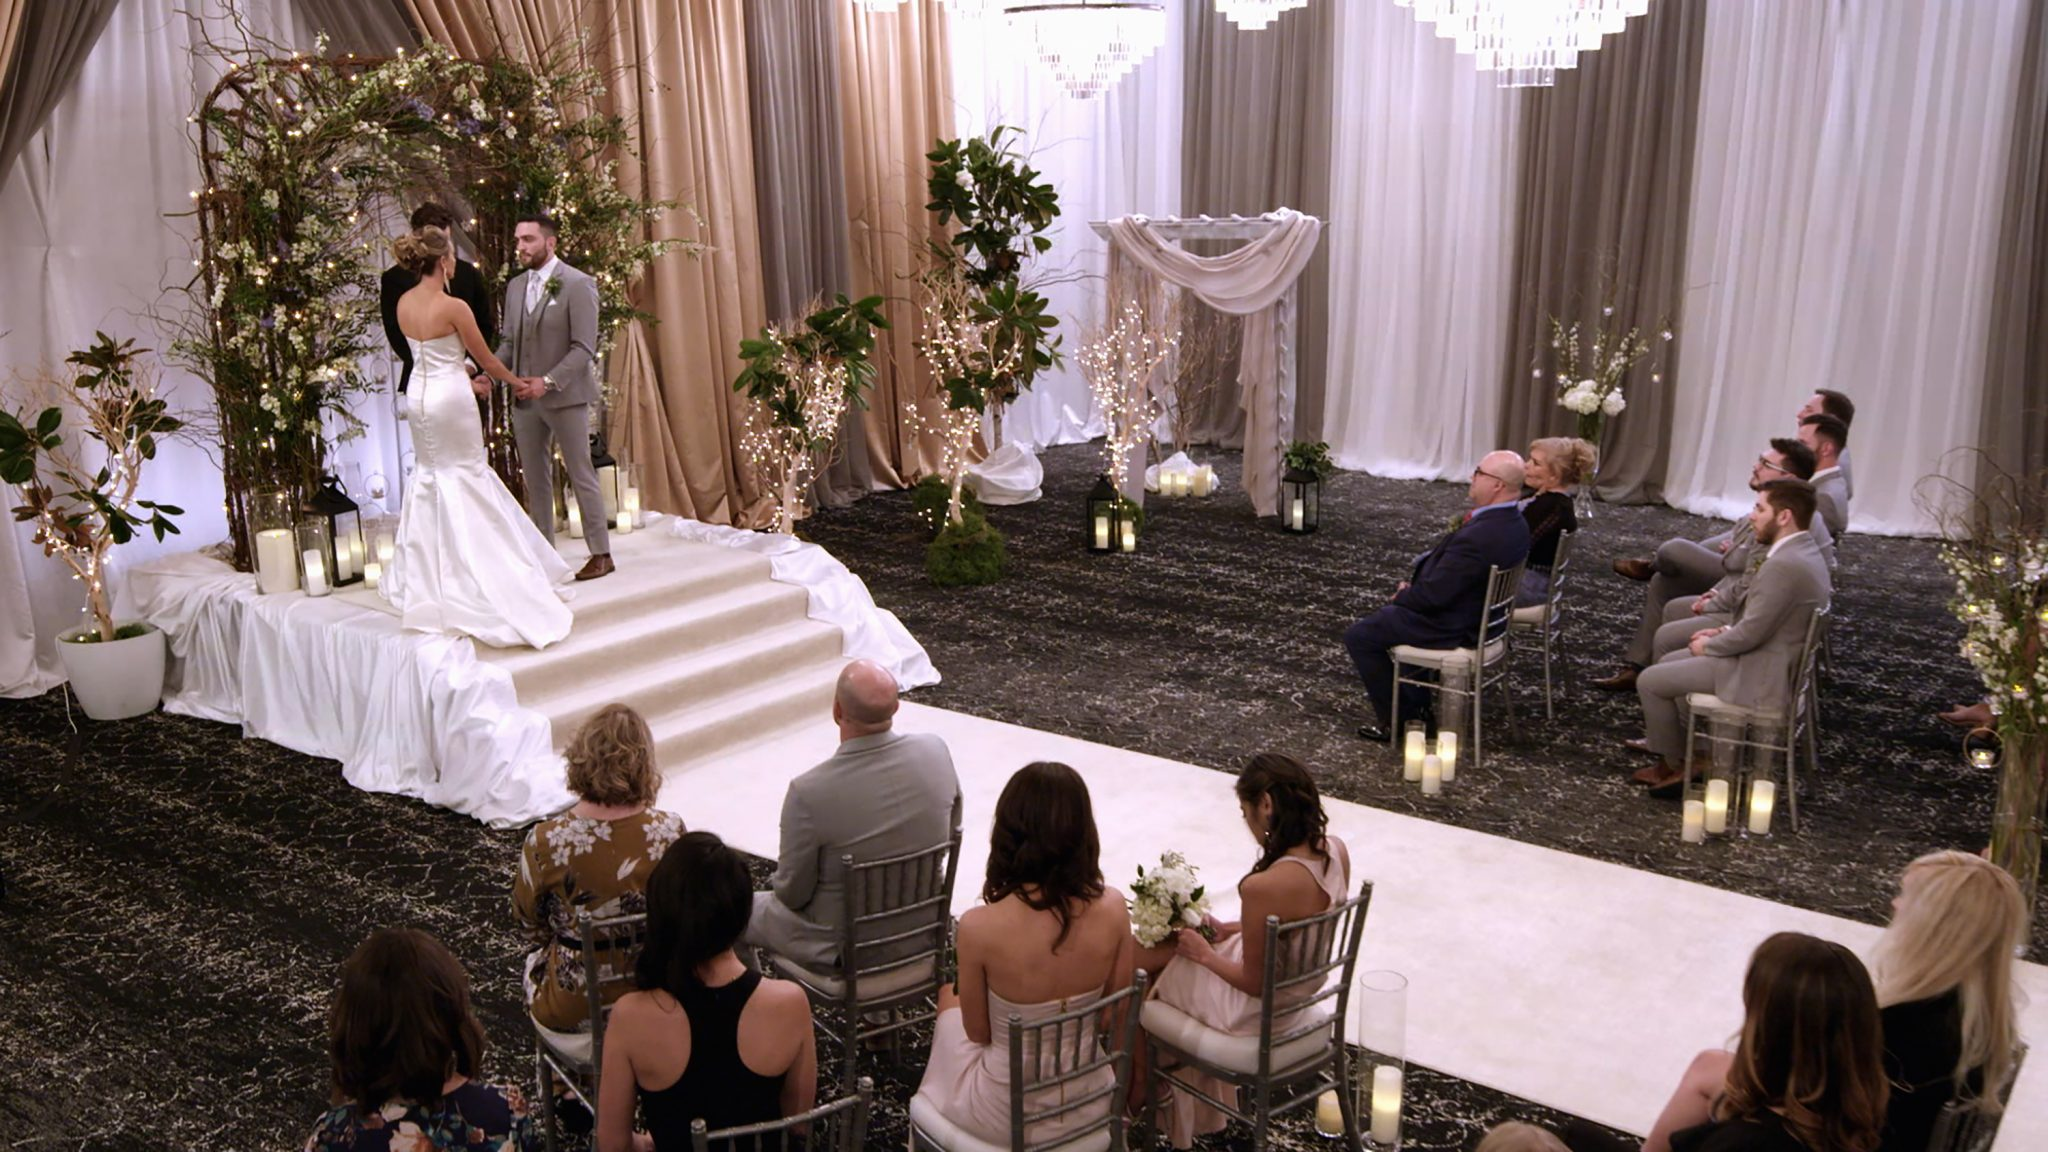 'Love Is Blind': Reunion Special Set For Nick & Vanessa Lachey's Netflix Series